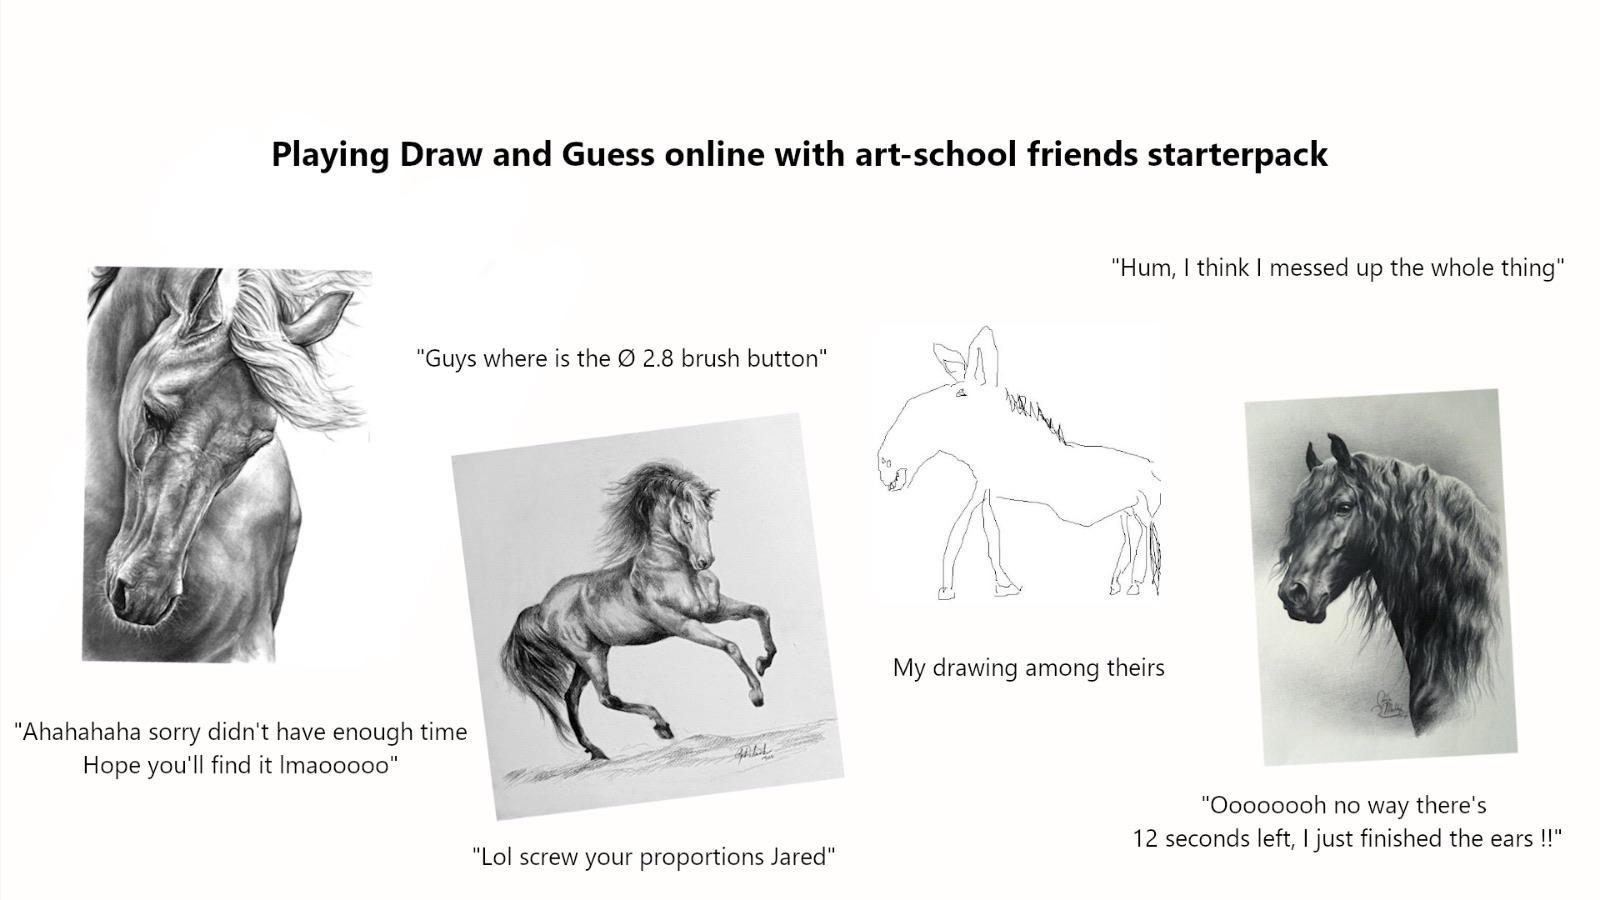 Playing Draw And Guess Online With Art School Friends Starterpack R Starterpacks Starter Packs Know Your Meme You draw, and a neural network tries to guess what you're drawing. playing draw and guess online with art